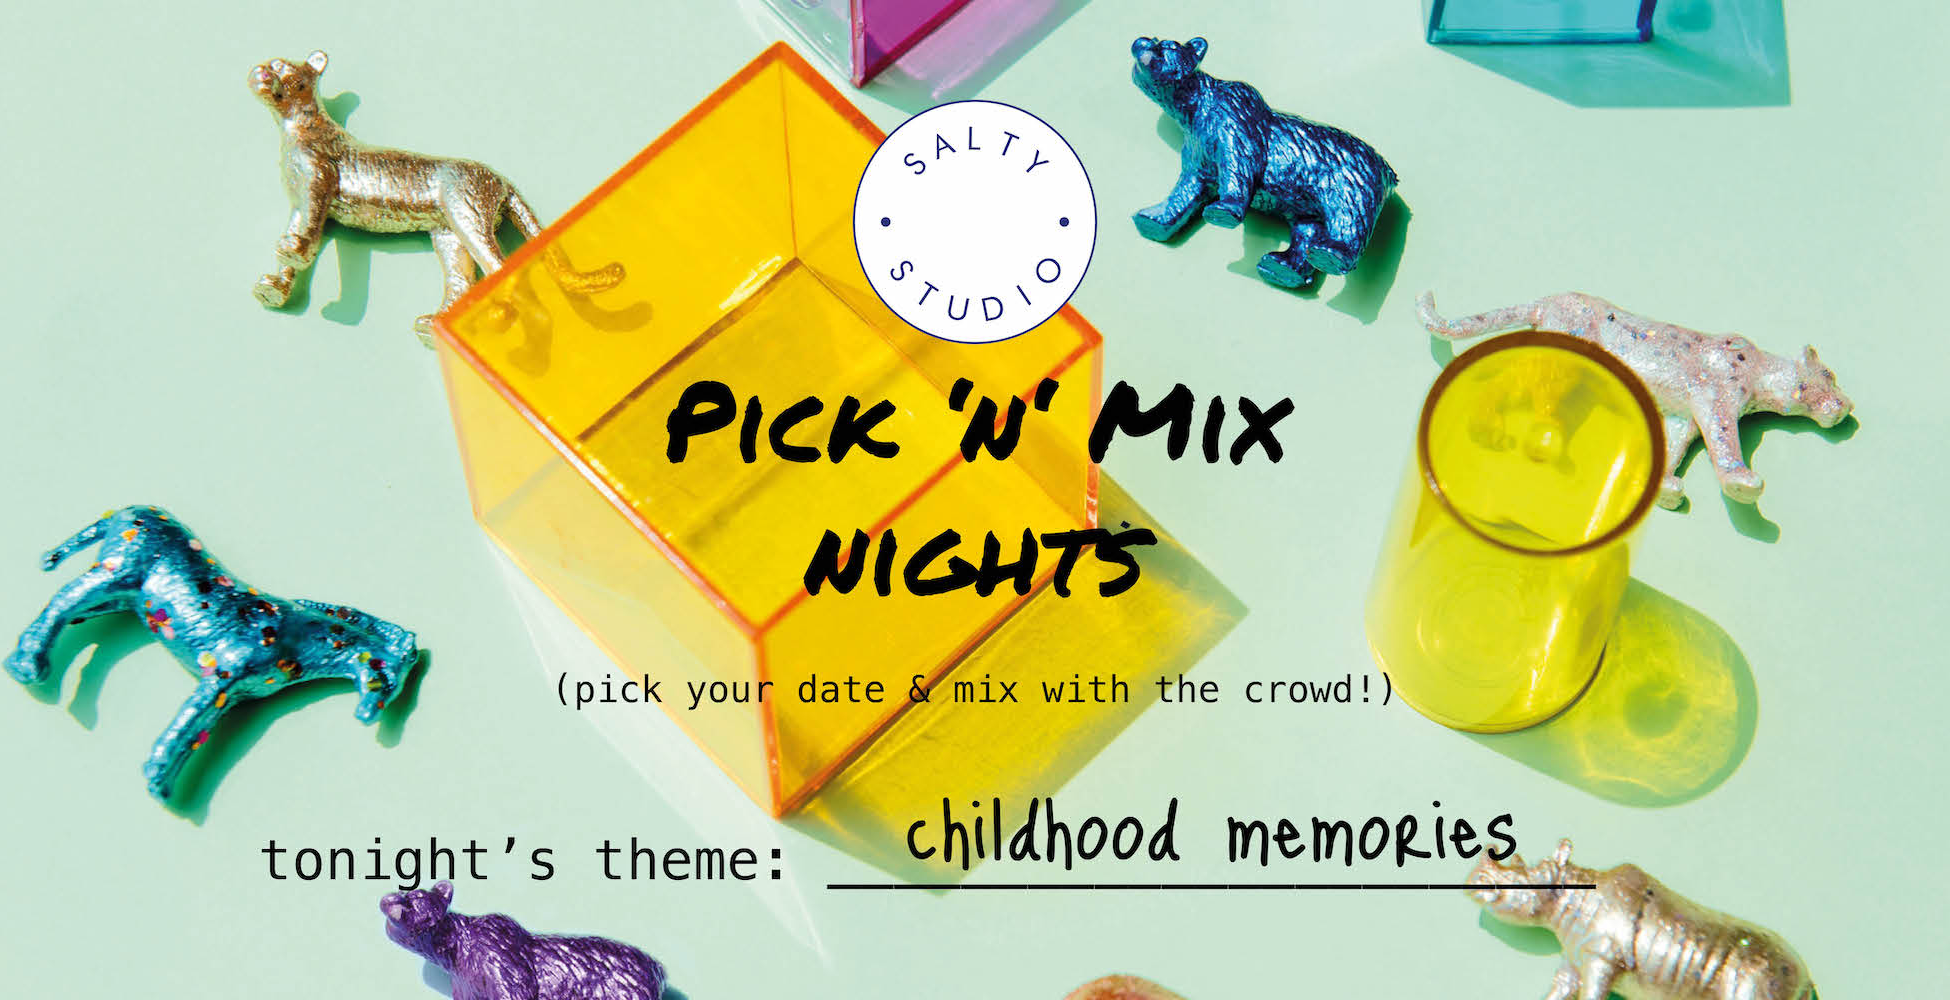 Salty Studio's Pick 'n' Mix supper club nights